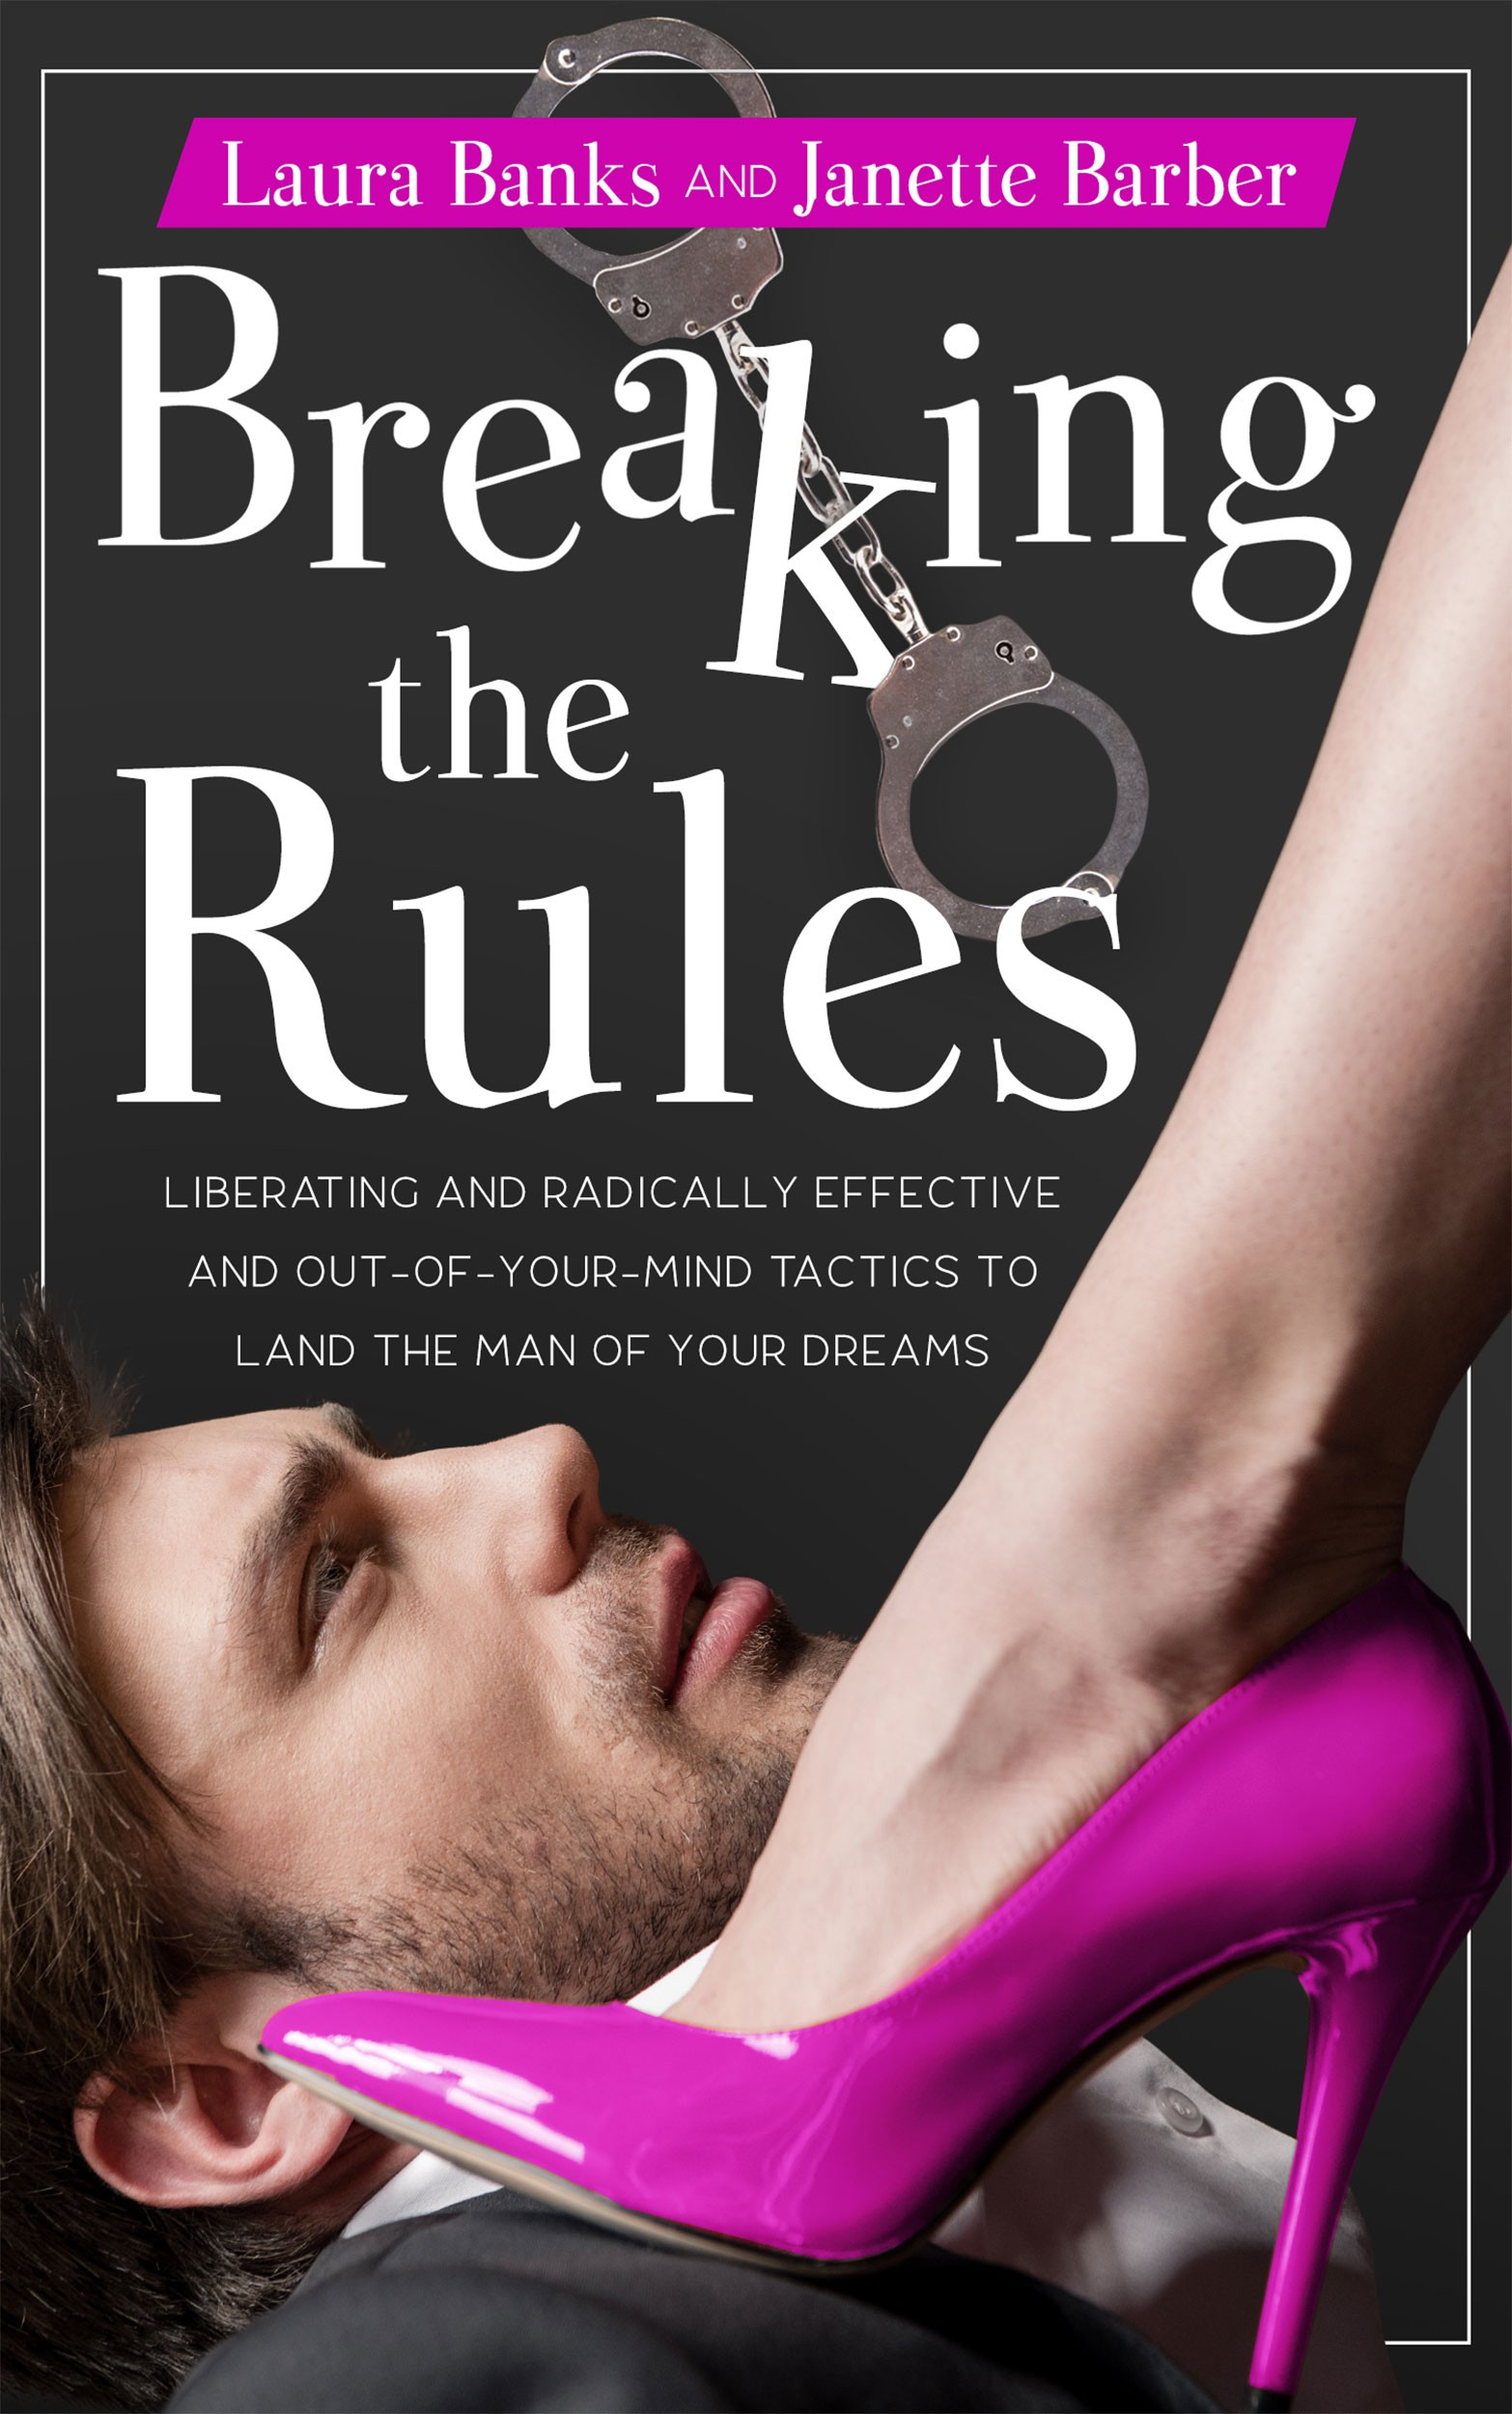 Work off Existing Book cover.Hysterical dating book by two-time bestselling authors and Emmy Awards.